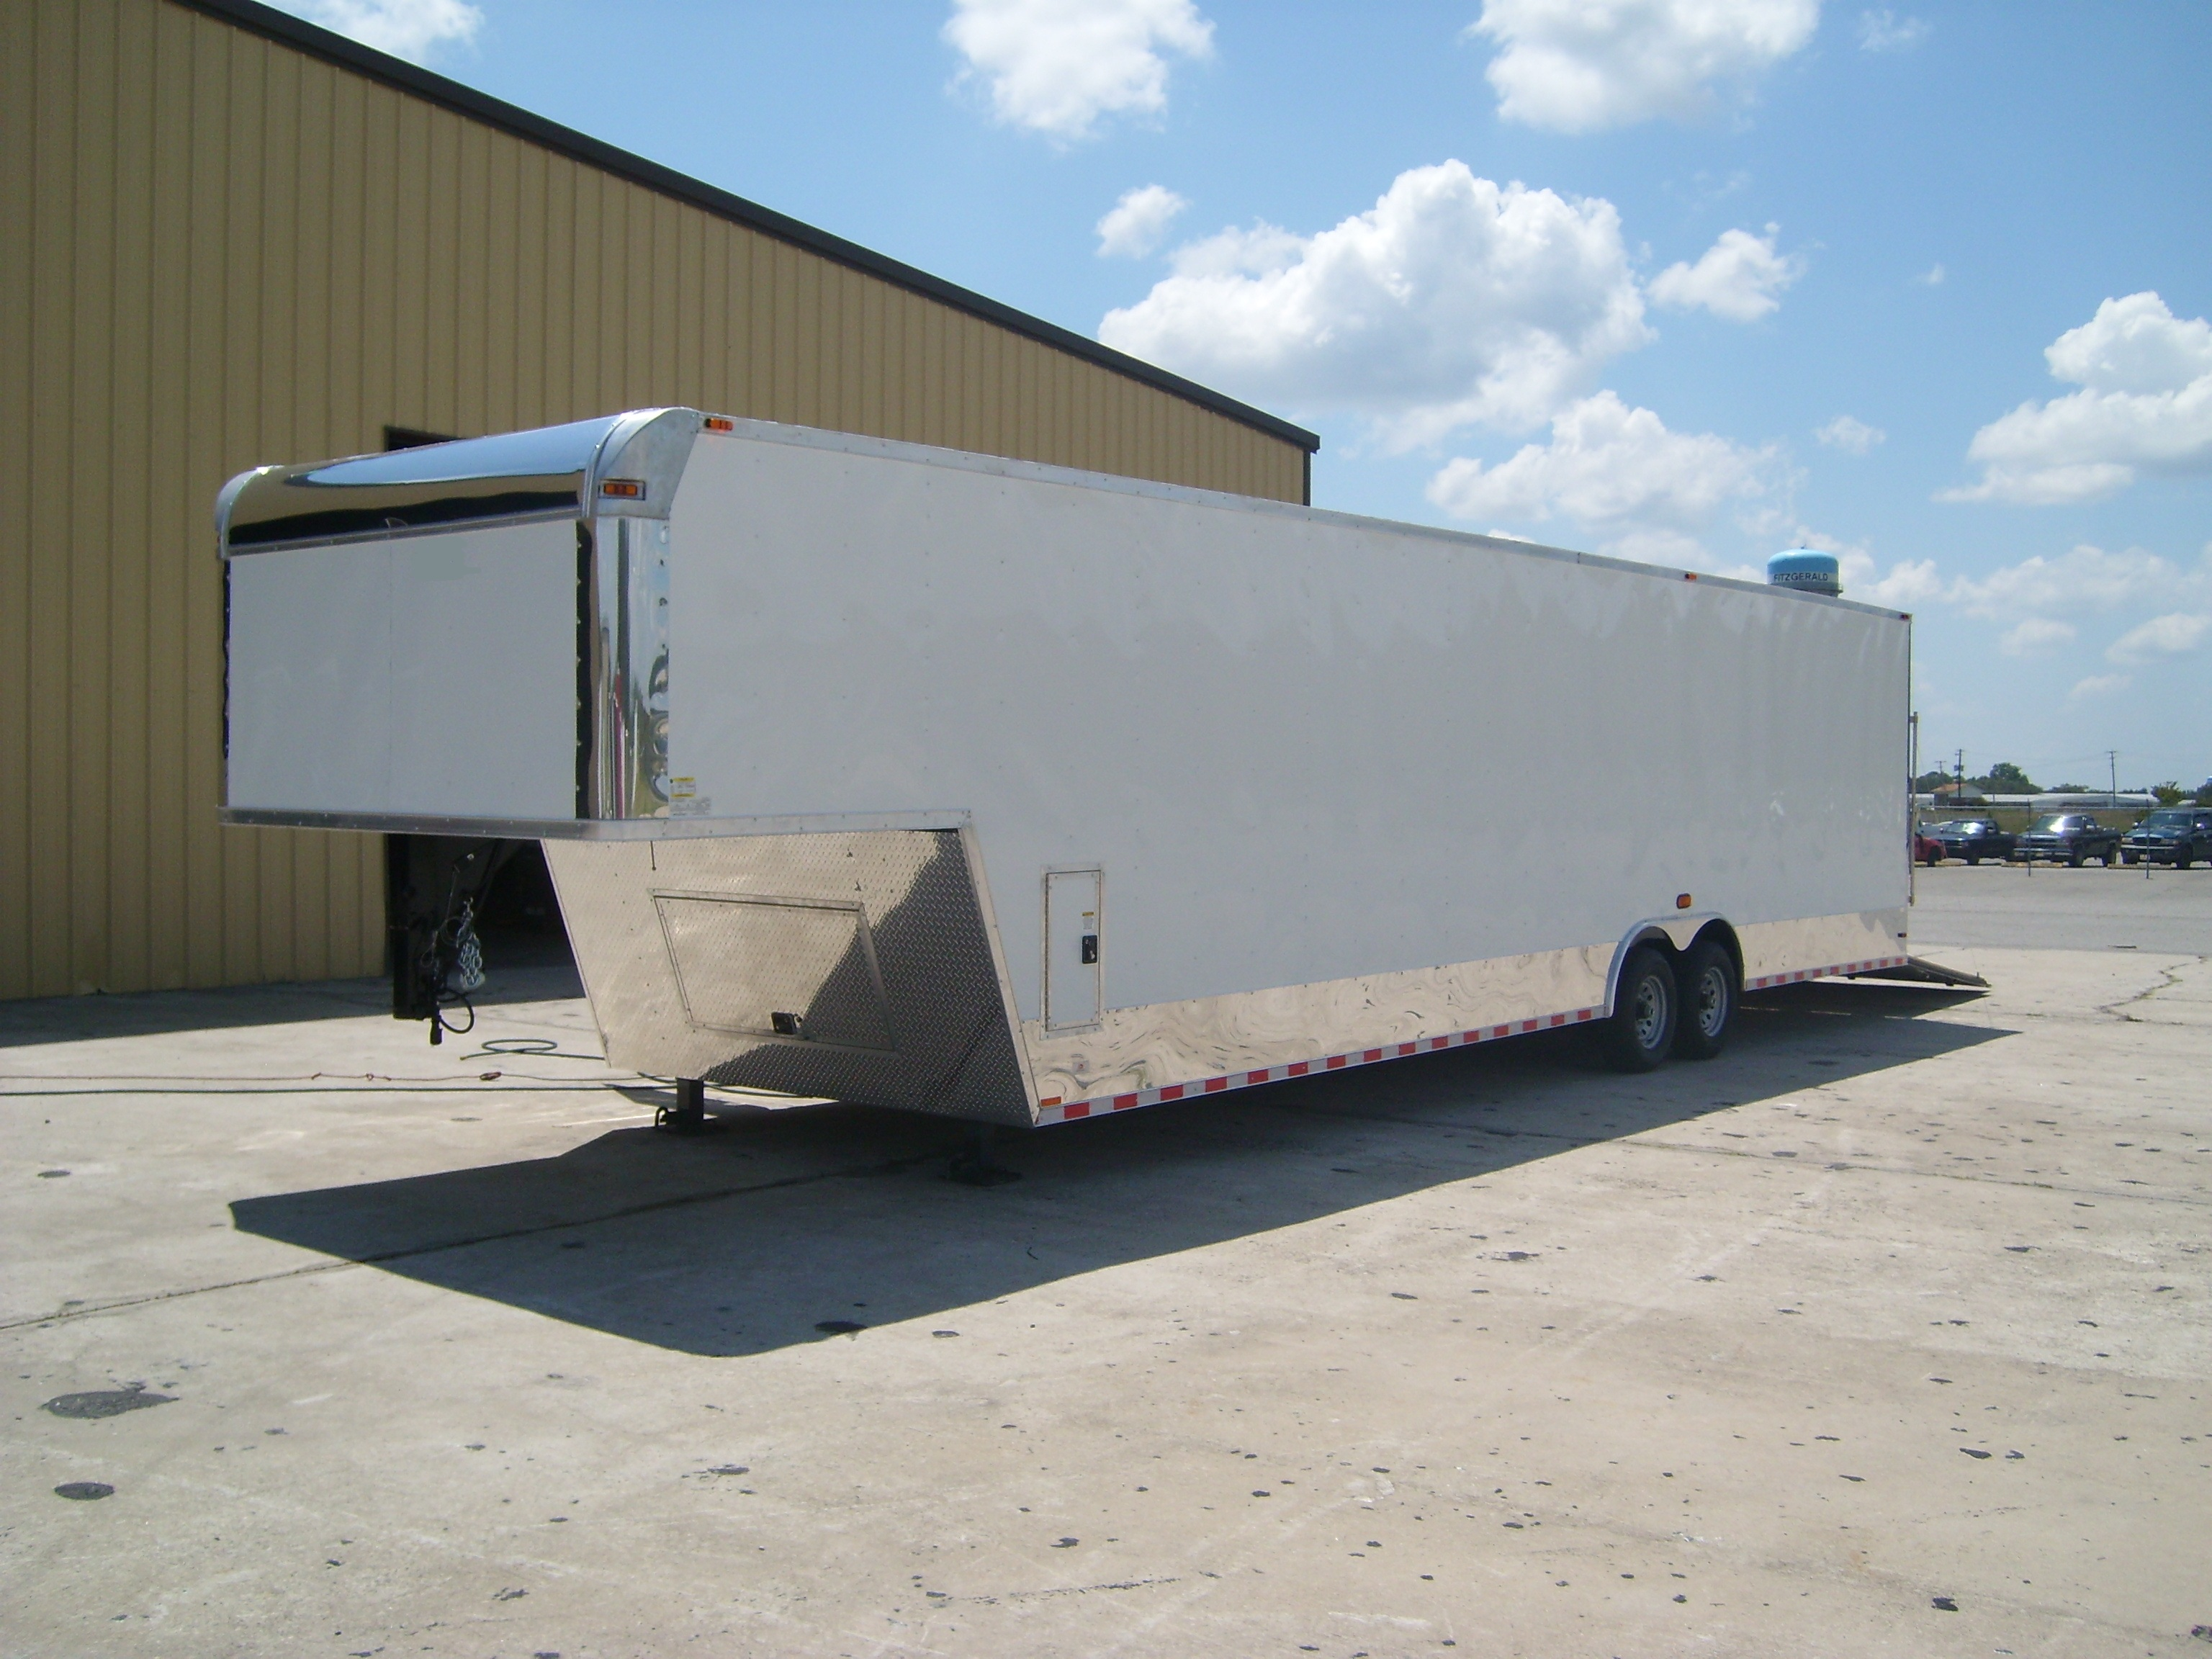 85x36 Tandem Axle Gooseneck Torsion 7 Ft Enclosed Trailers For Double Car Trailer 24 Foot Flatbed 8536